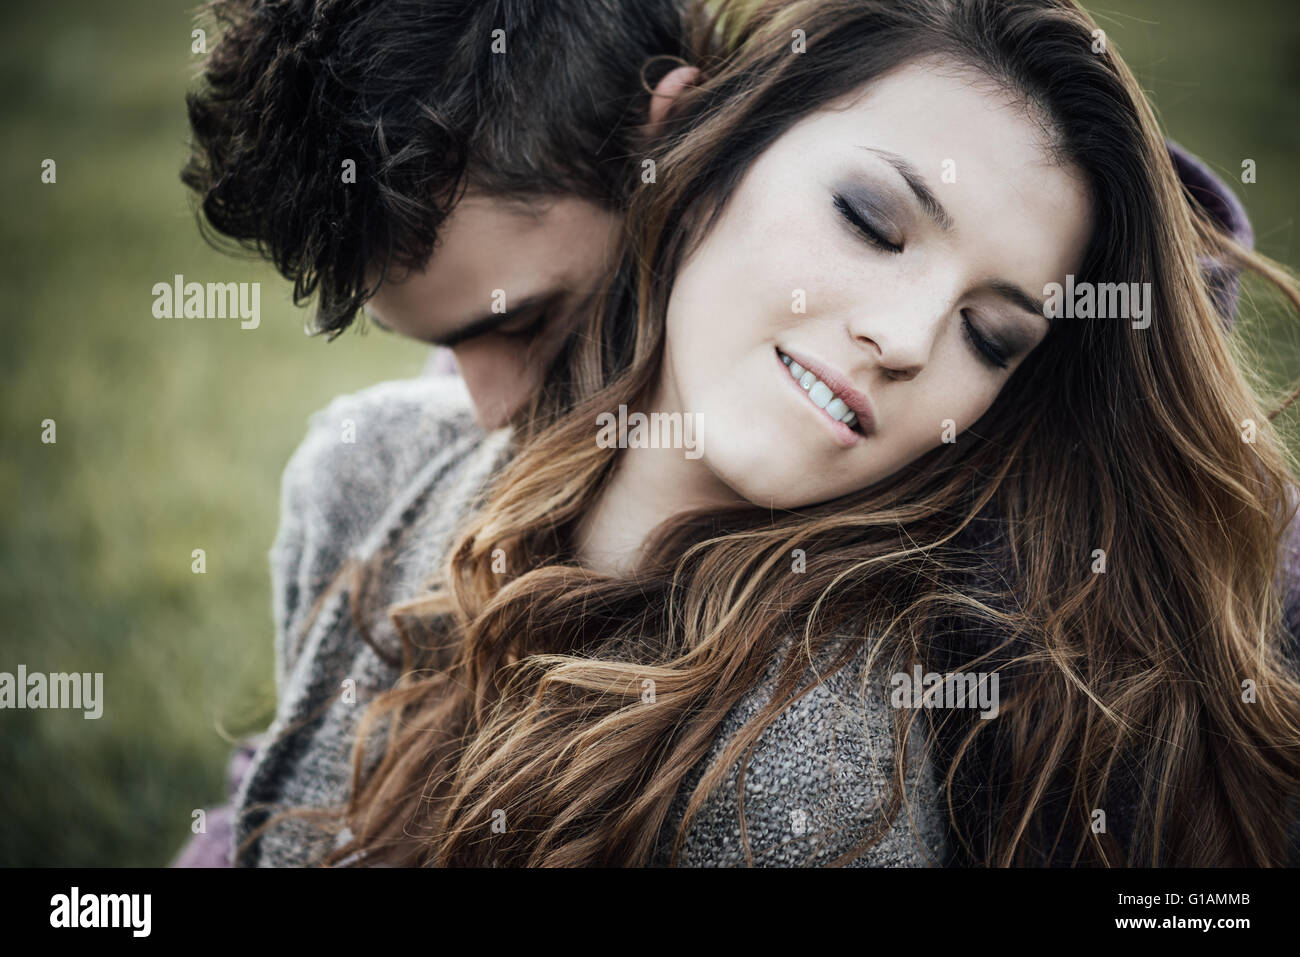 Romantic couple outdoors, they are sitting on grass and hugging, she is biting her lip - Stock Image